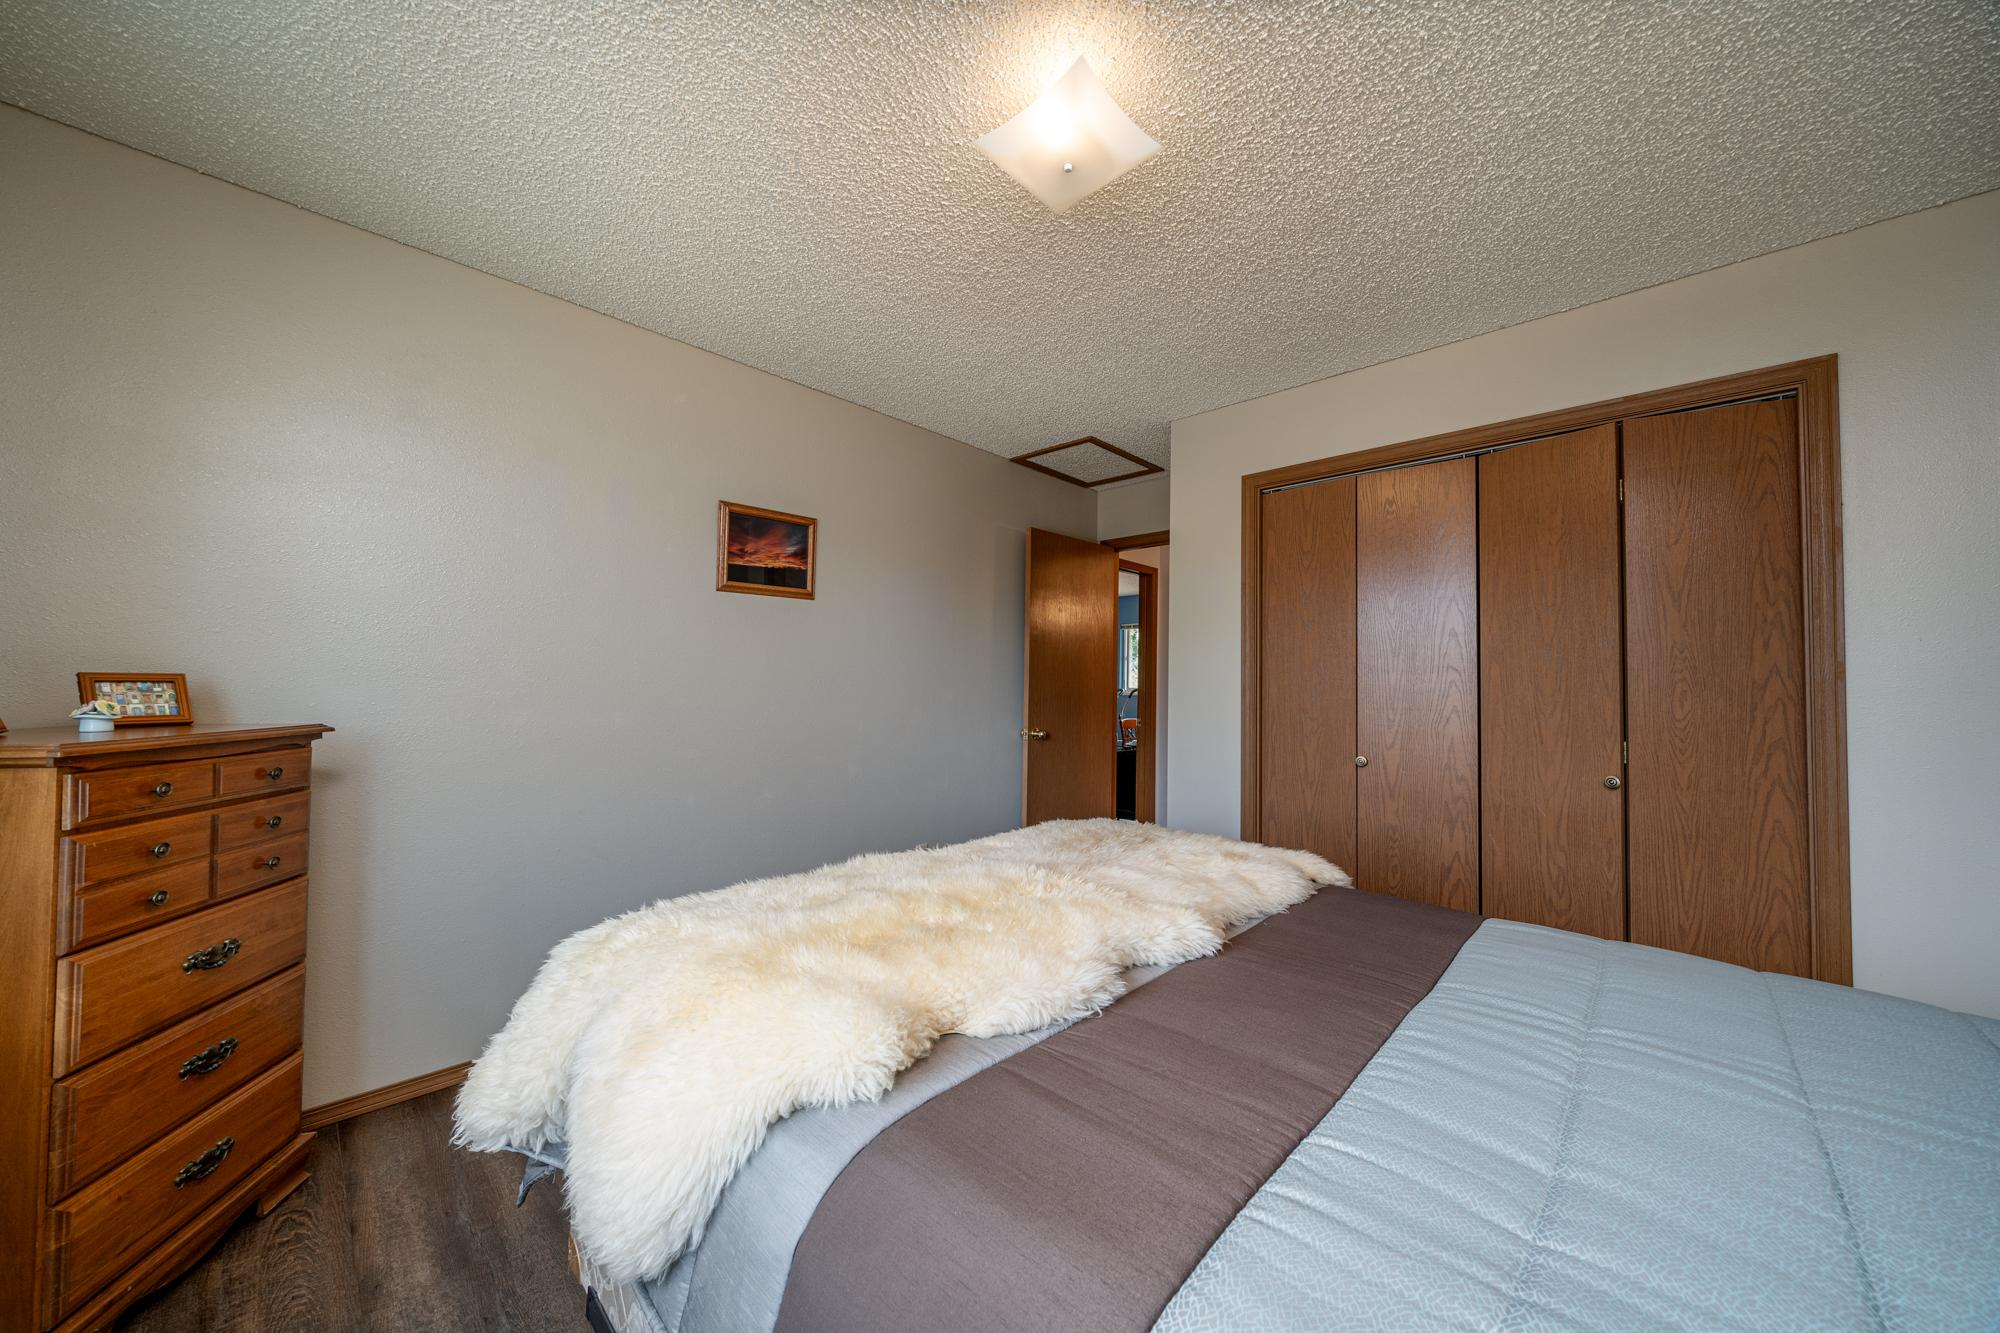 Bedroom with Ceiling Light - 1311 Manchester Dr Montrose, CO 81401 - Atha Team Realty Agents